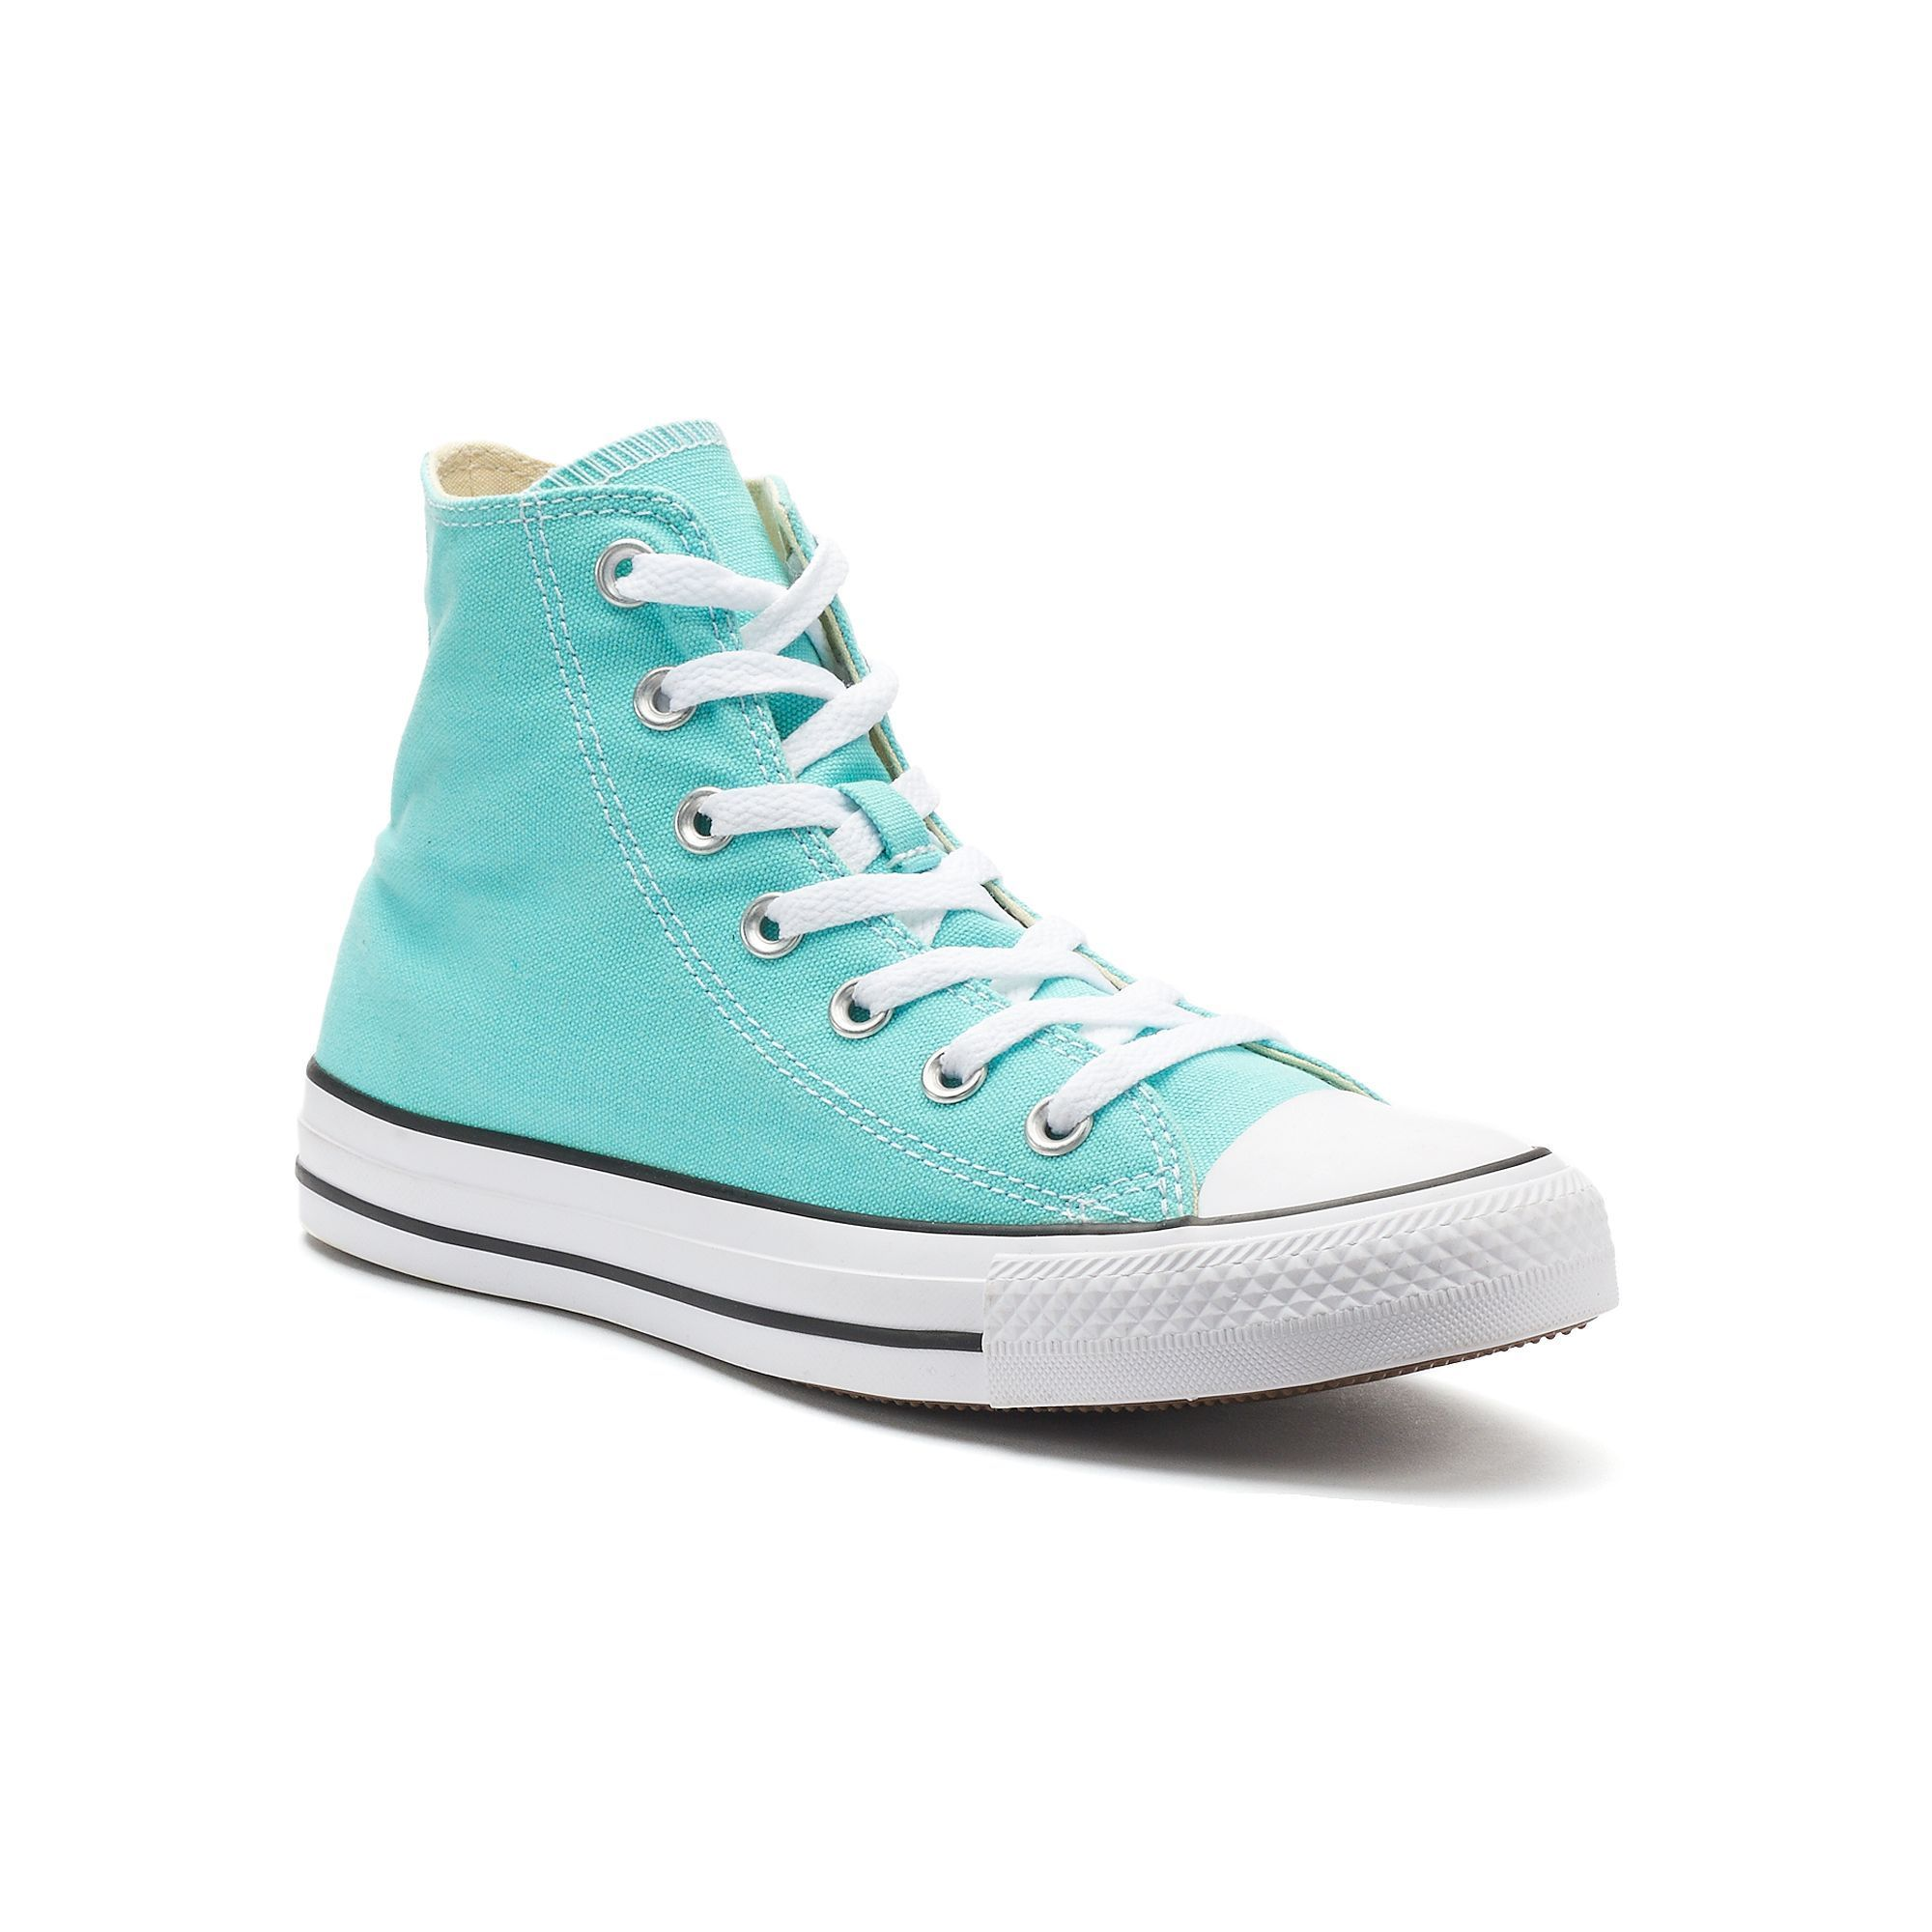 fd6298476fa Adult Converse All Star Chuck Taylor High-Top Sneakers in 2019 ...